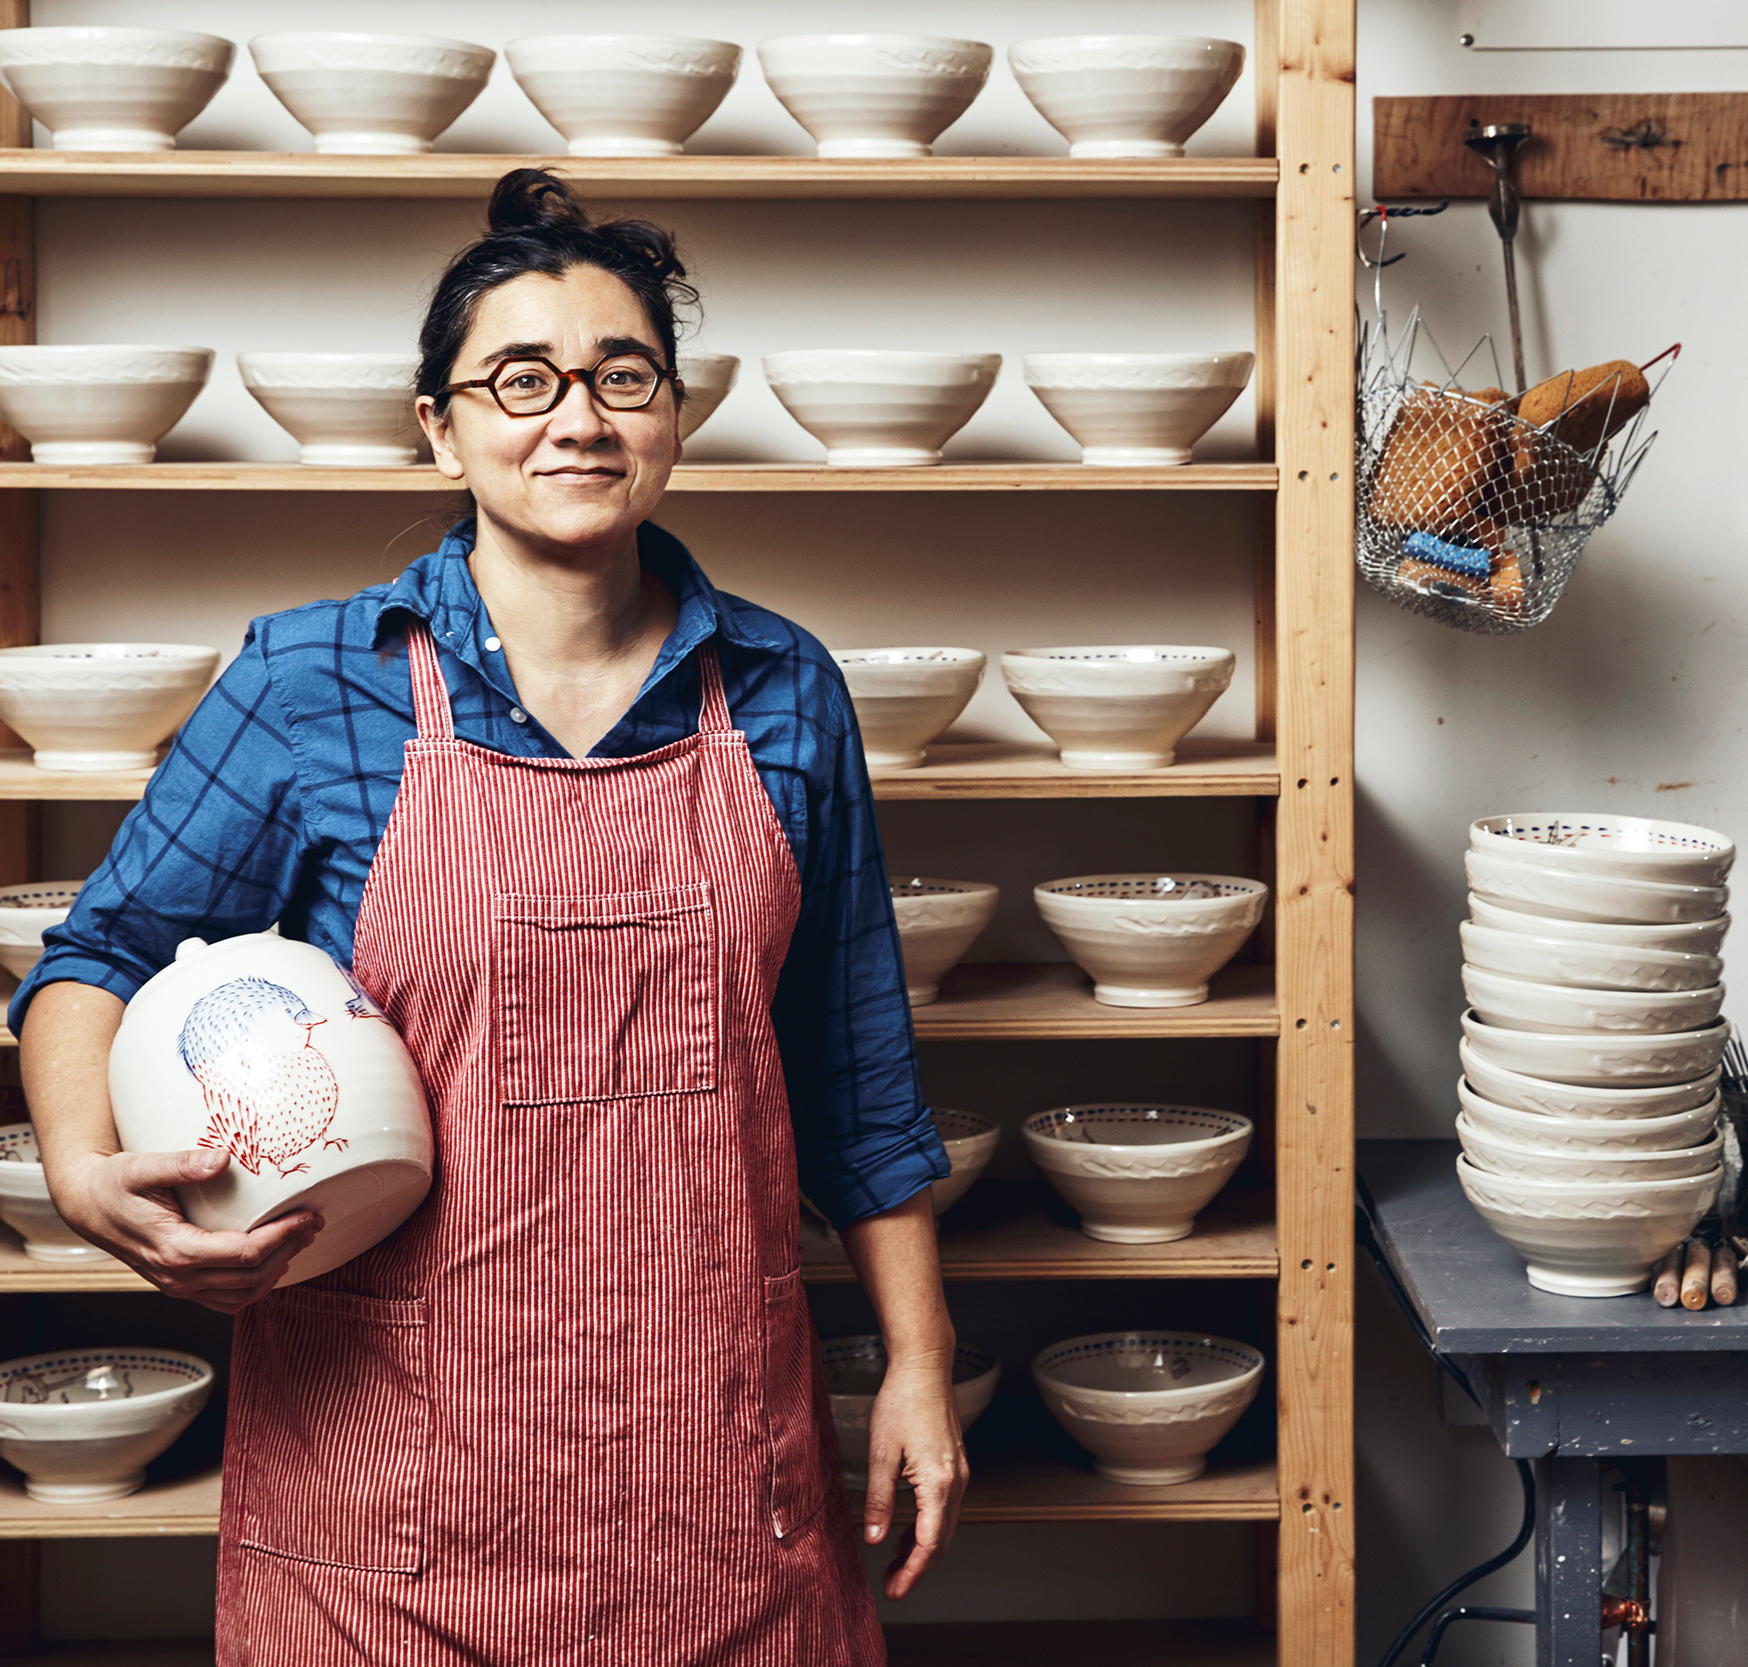 photo of a potter standing in front of a rack of ramen bowls holding a jar.